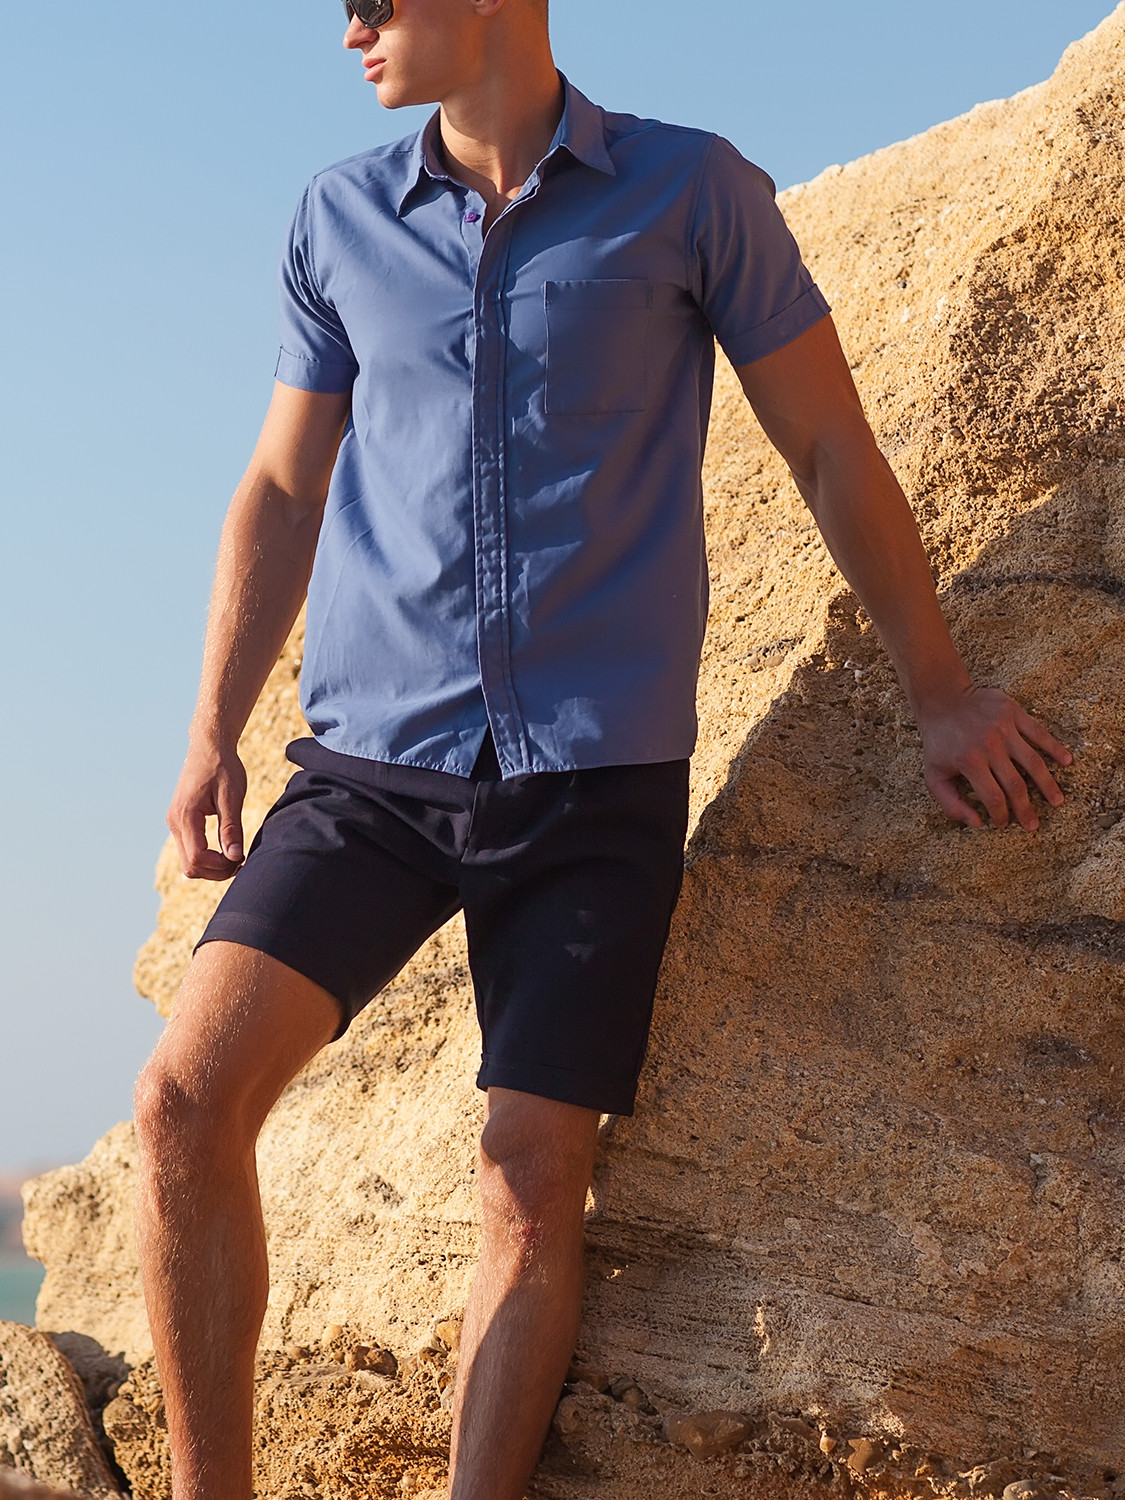 Men's outfit idea for 2021 with blue short-sleeved plain shirt, navy cotton shorts, black sunglasses. Suitable for spring and summer.